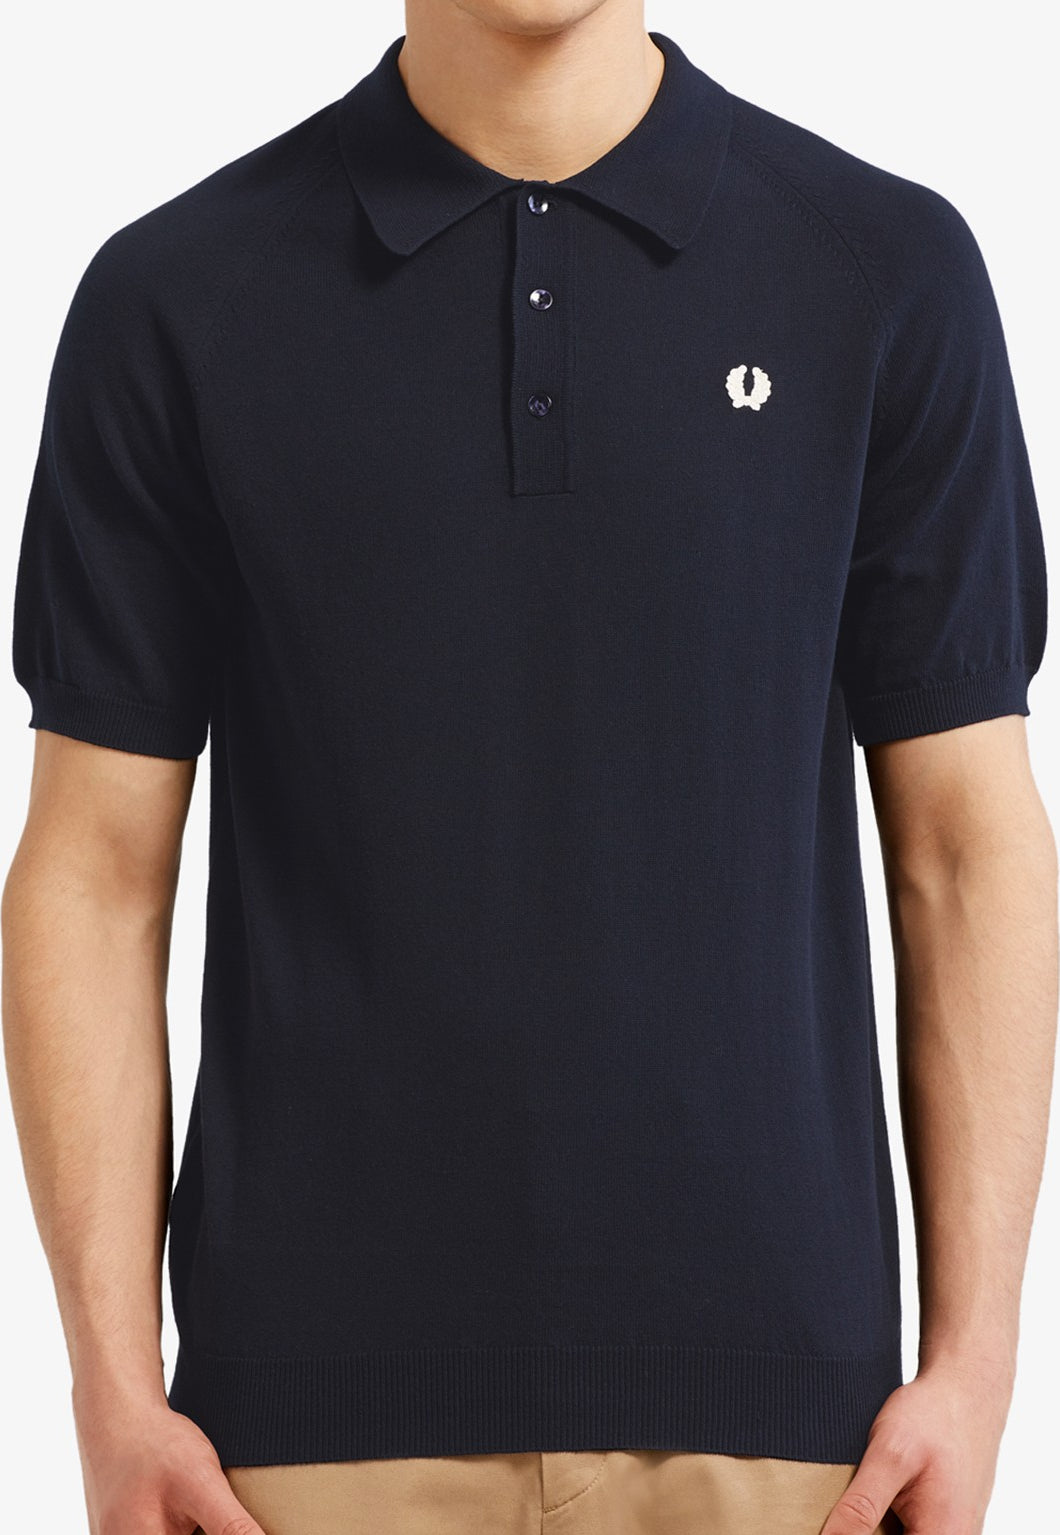 Fred Perry - Raglan Sleeve Knitted Shirt K5303 in Navy